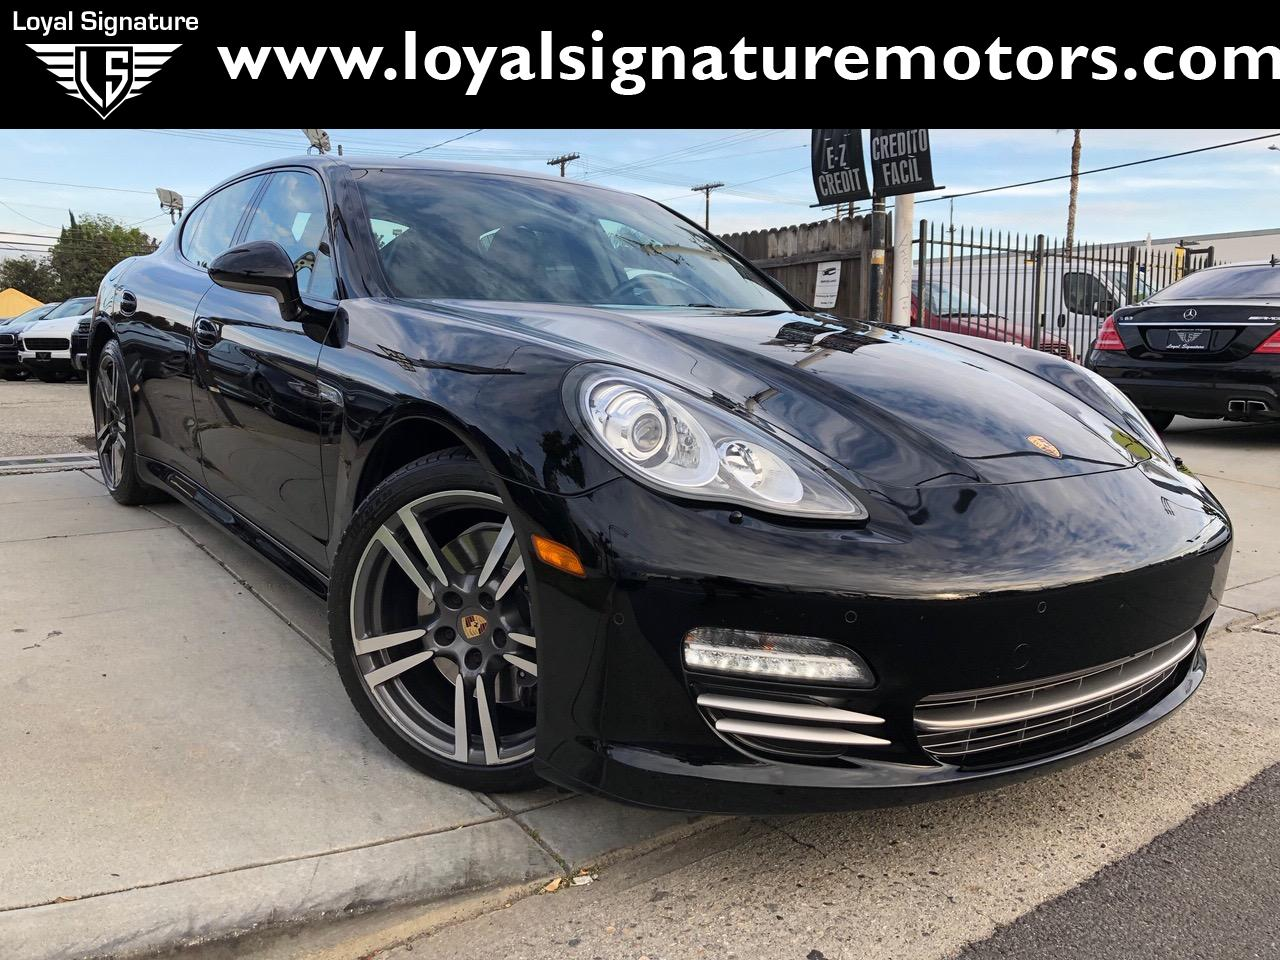 Used 2013 Porsche Panamera For Sale 33995 Loyal